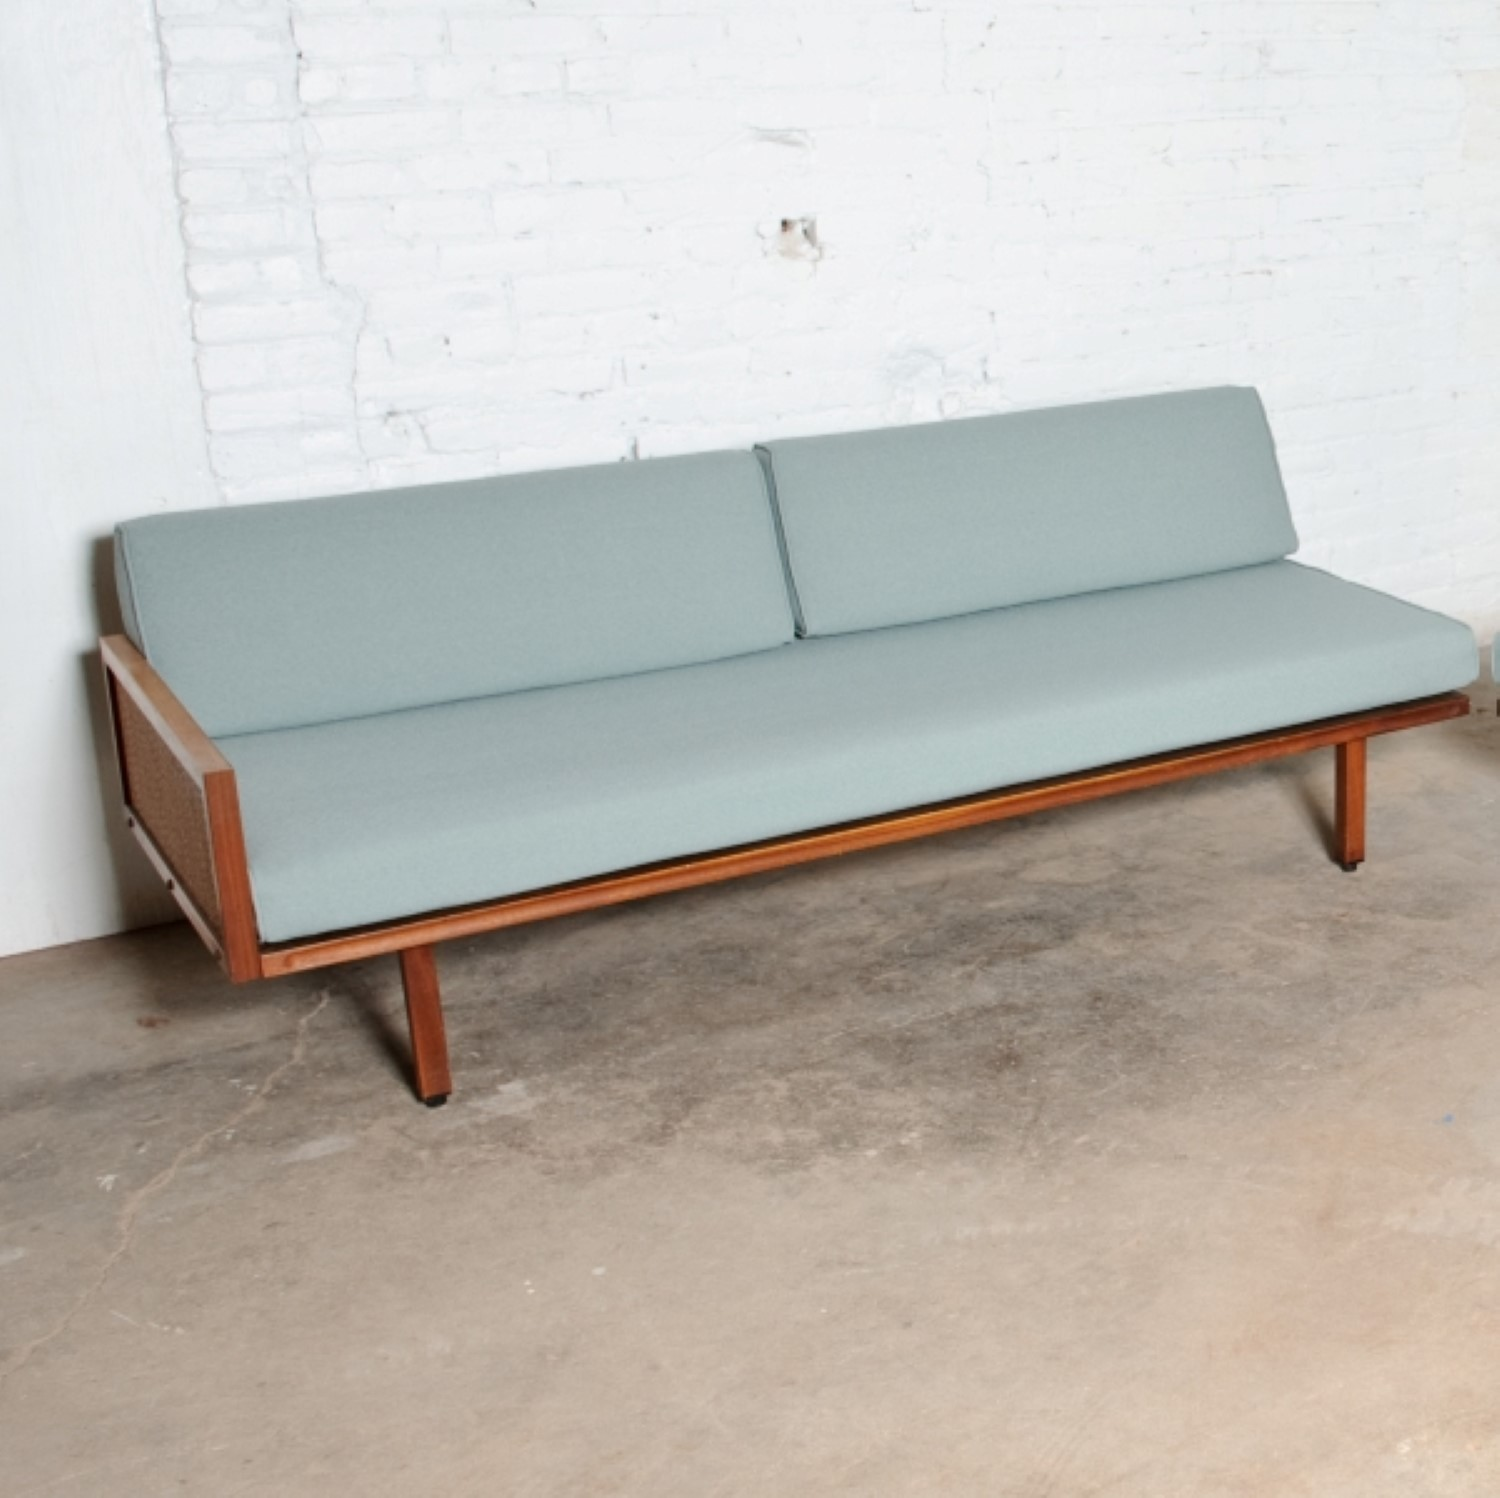 Mid Century Modern Sectional Daybed Sofa Warehouse 414